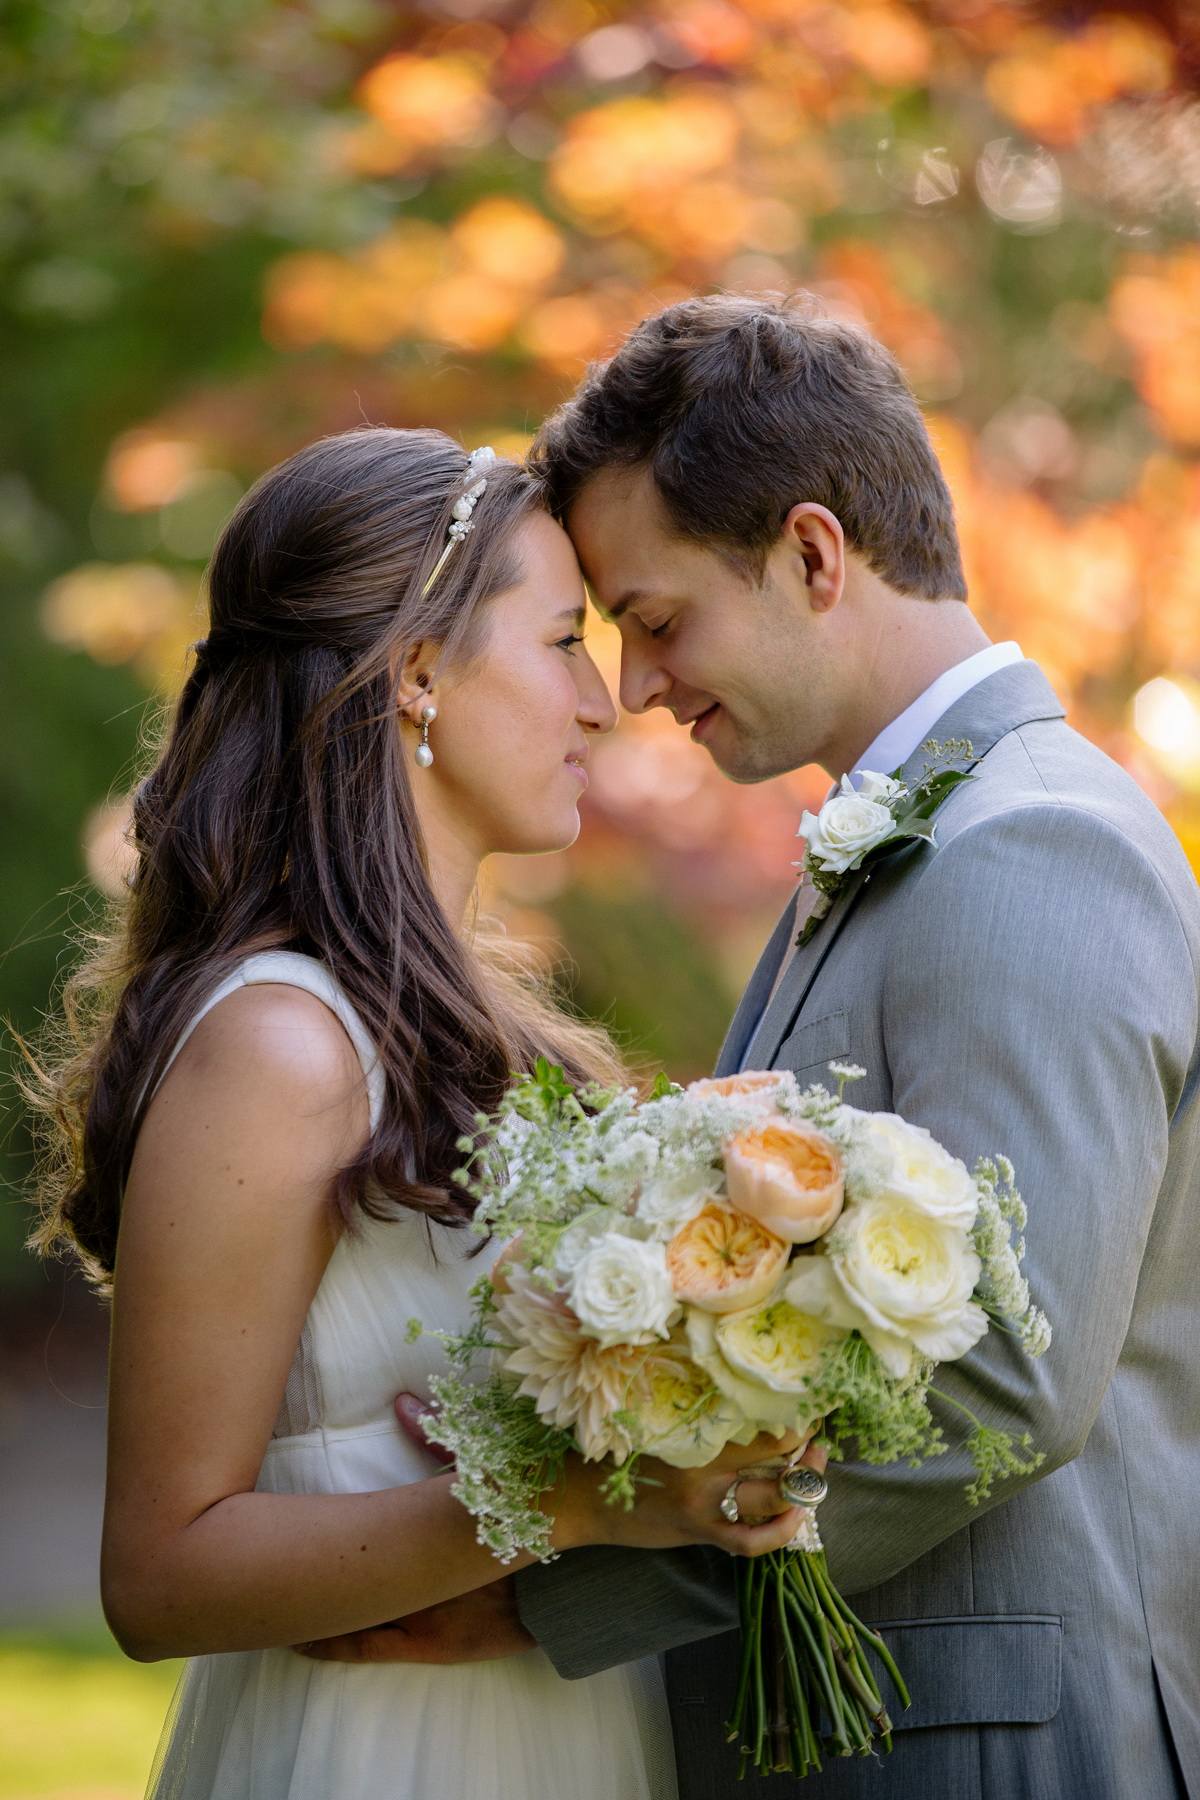 casual portrait of a bride and groom with fall foliage